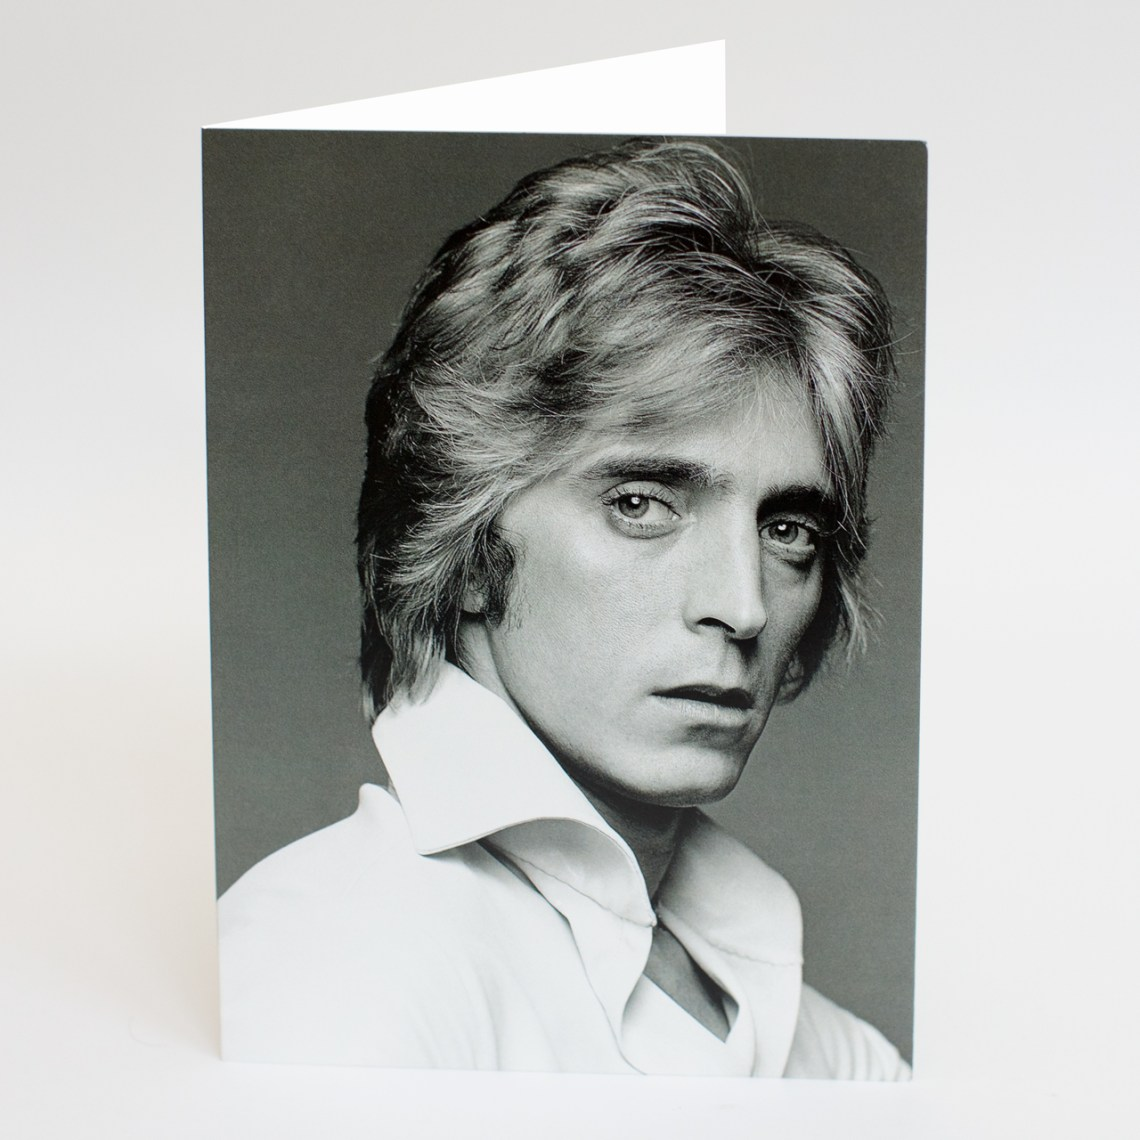 Mick Ronson White Shirt 5060634320078 - A5Card by Clive Arrowsmith